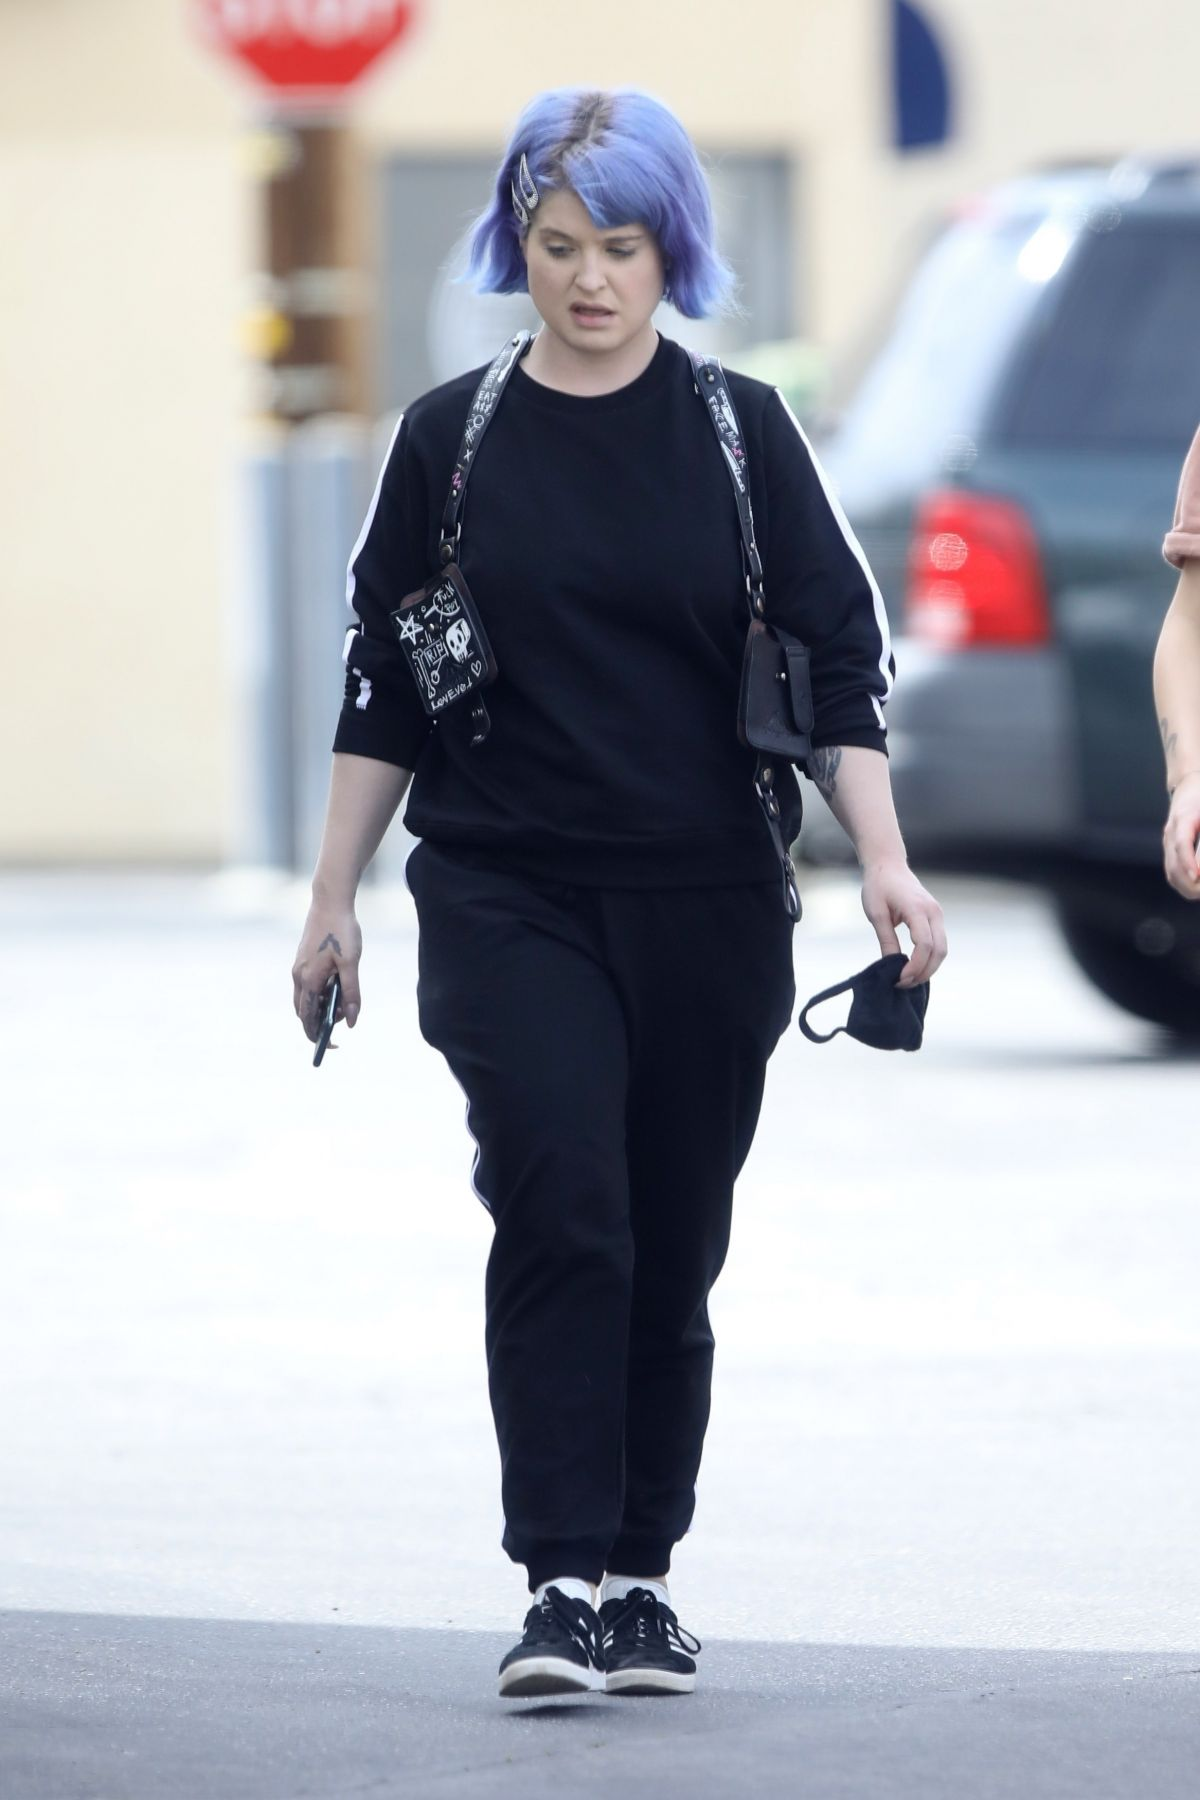 KELLY OSBOURNE Pick Up Take Out Lunch Out in Los Angeles ...Kelly Osbourne 2020 Diet